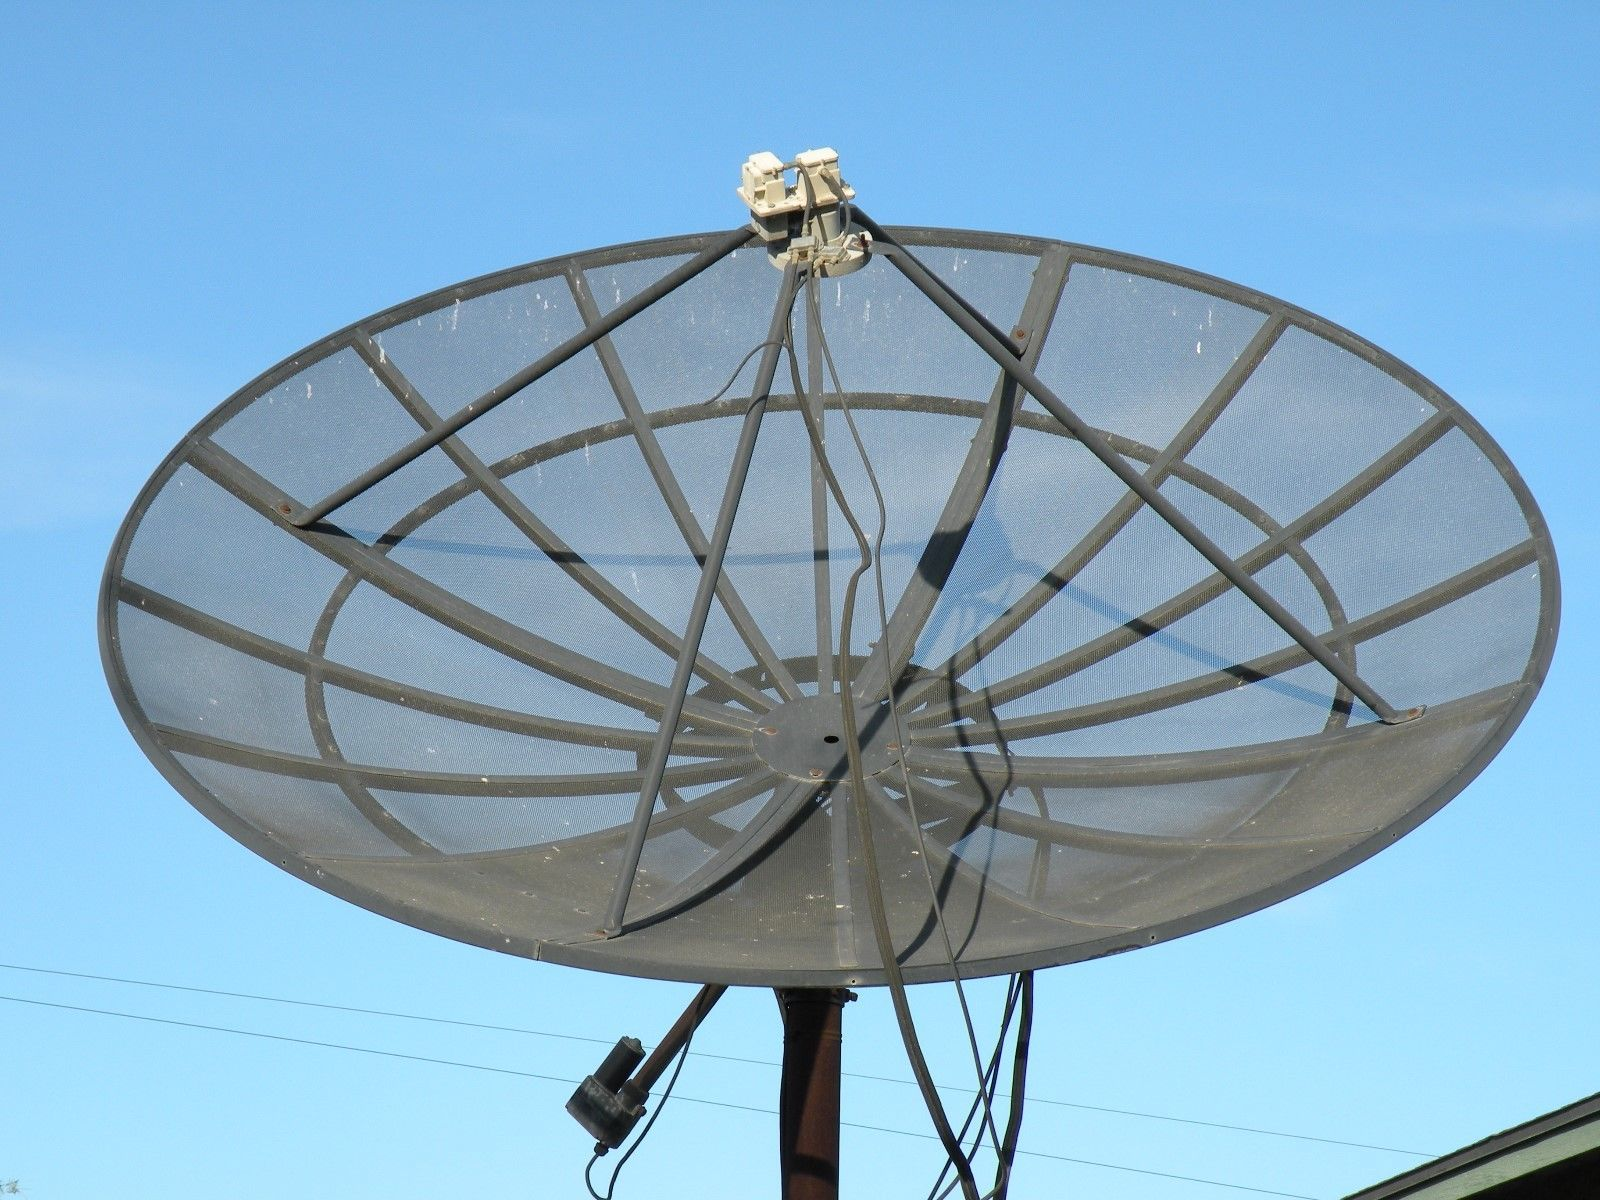 Antenna tracking systems